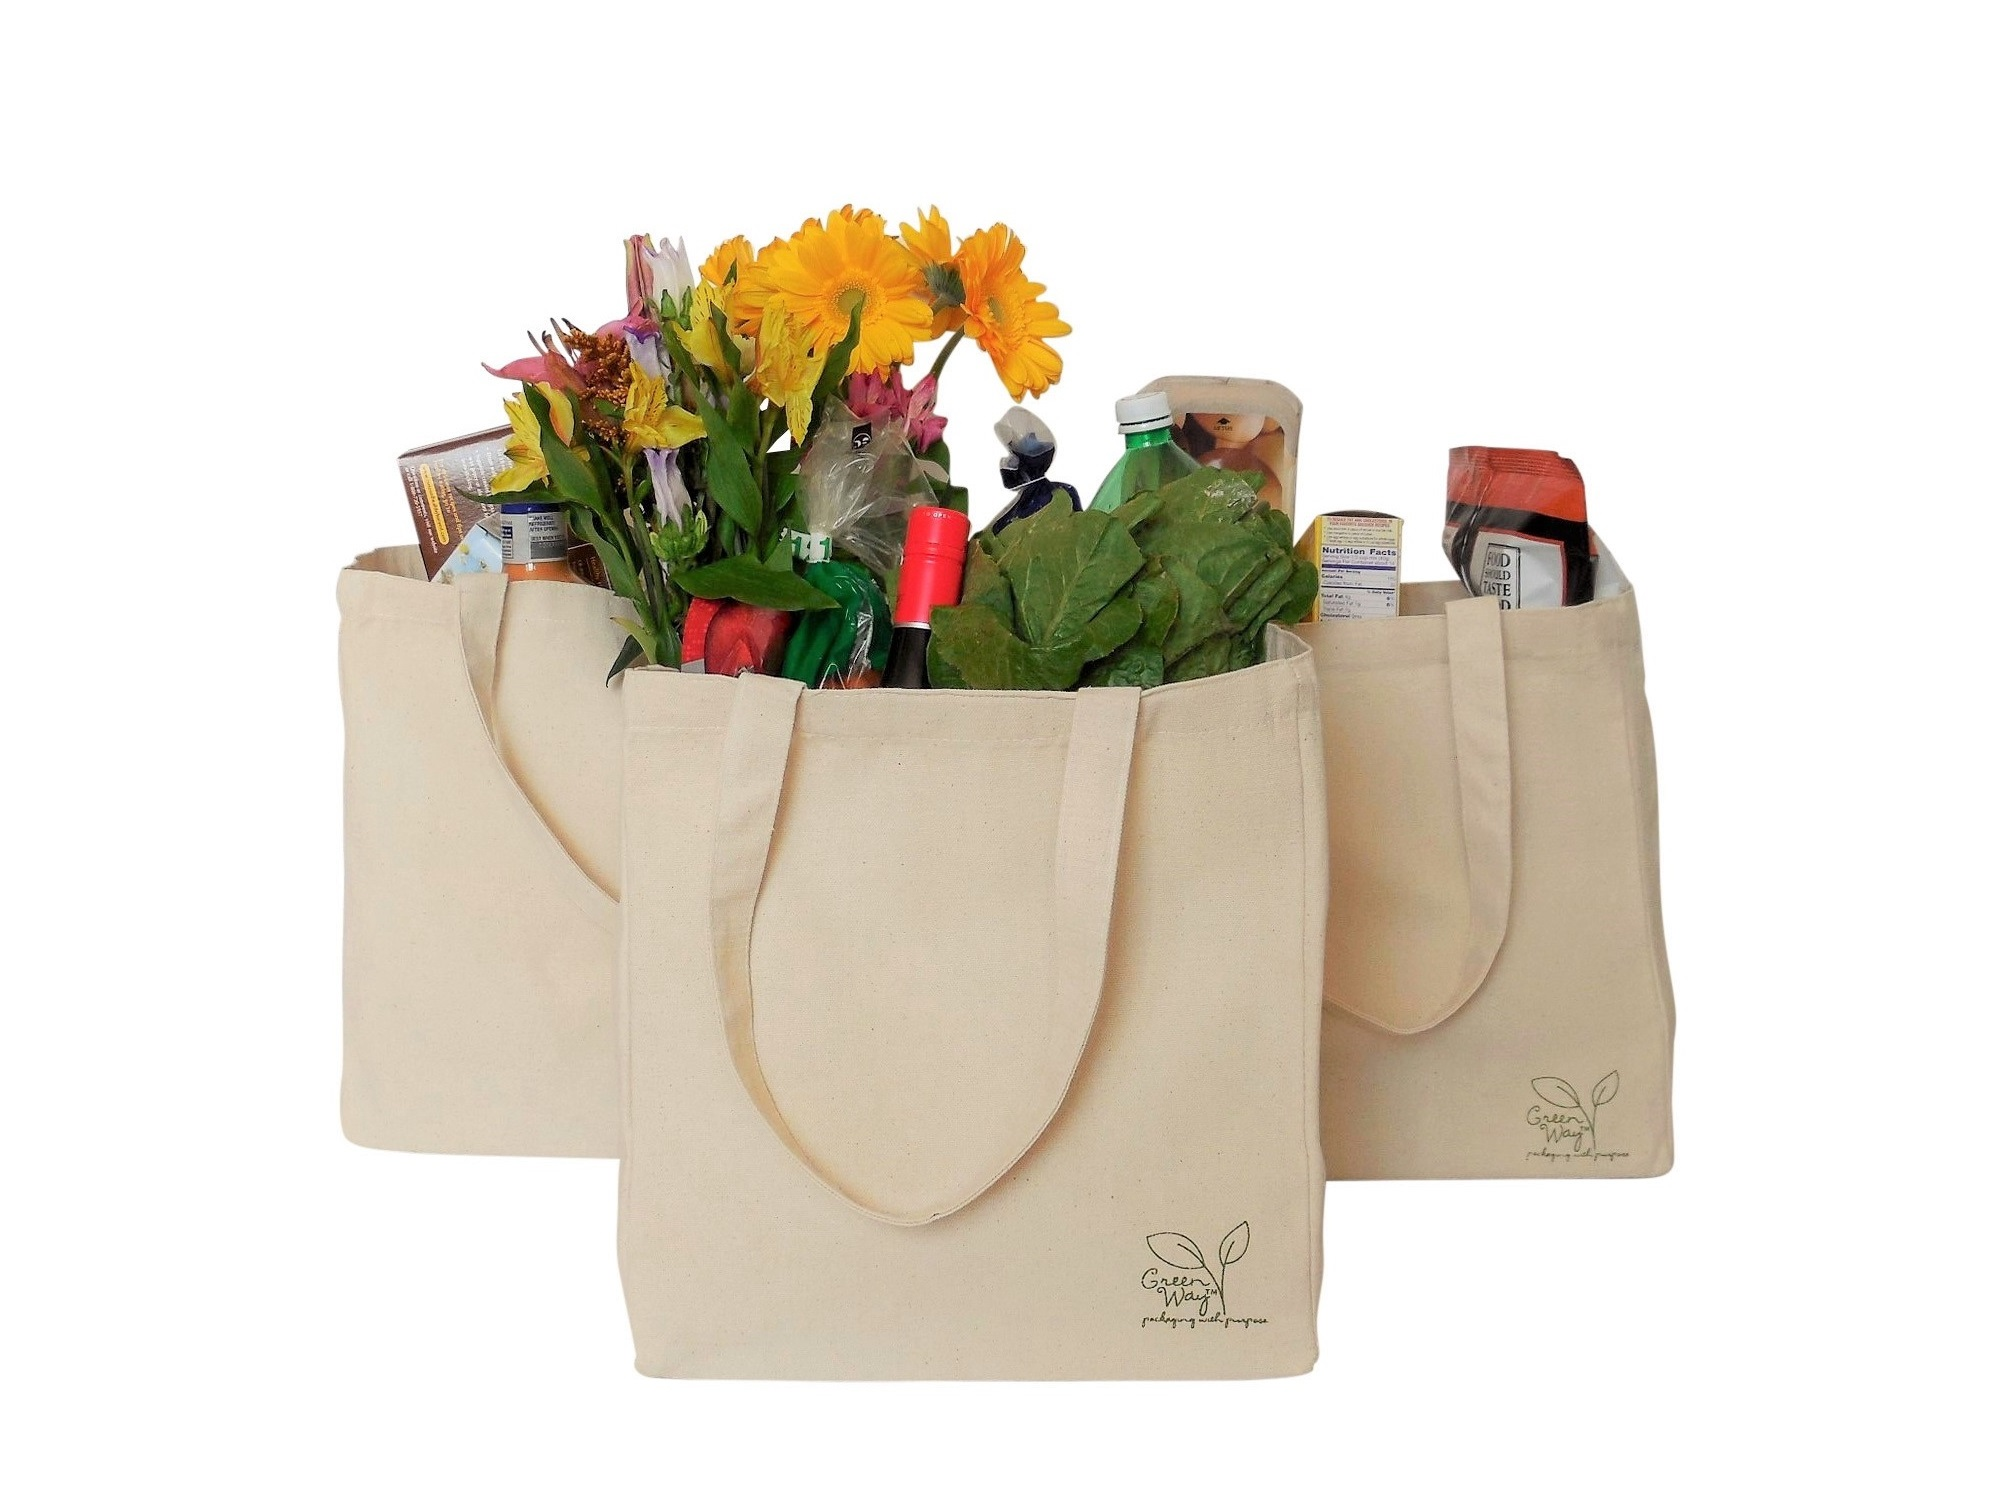 3 Canvas Shopping Bags with Groceries